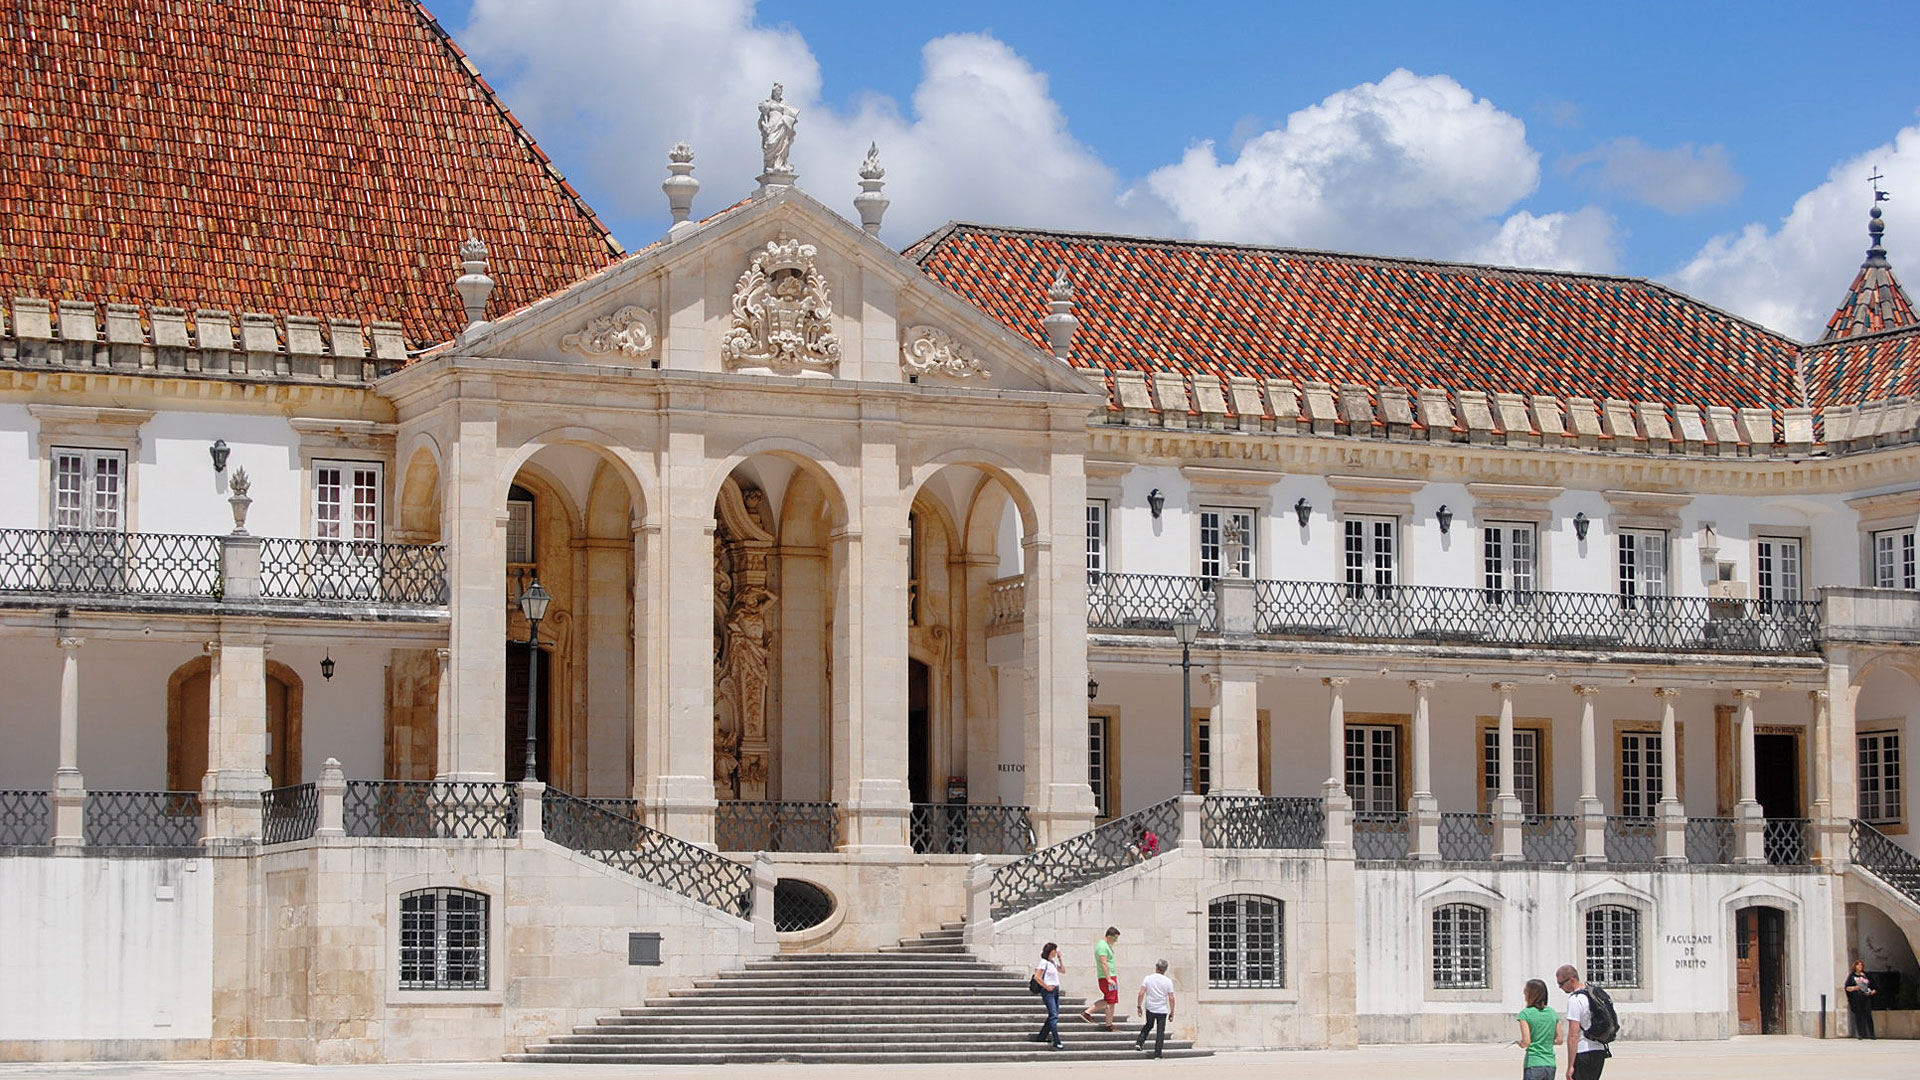 The campus of University of Coimbra